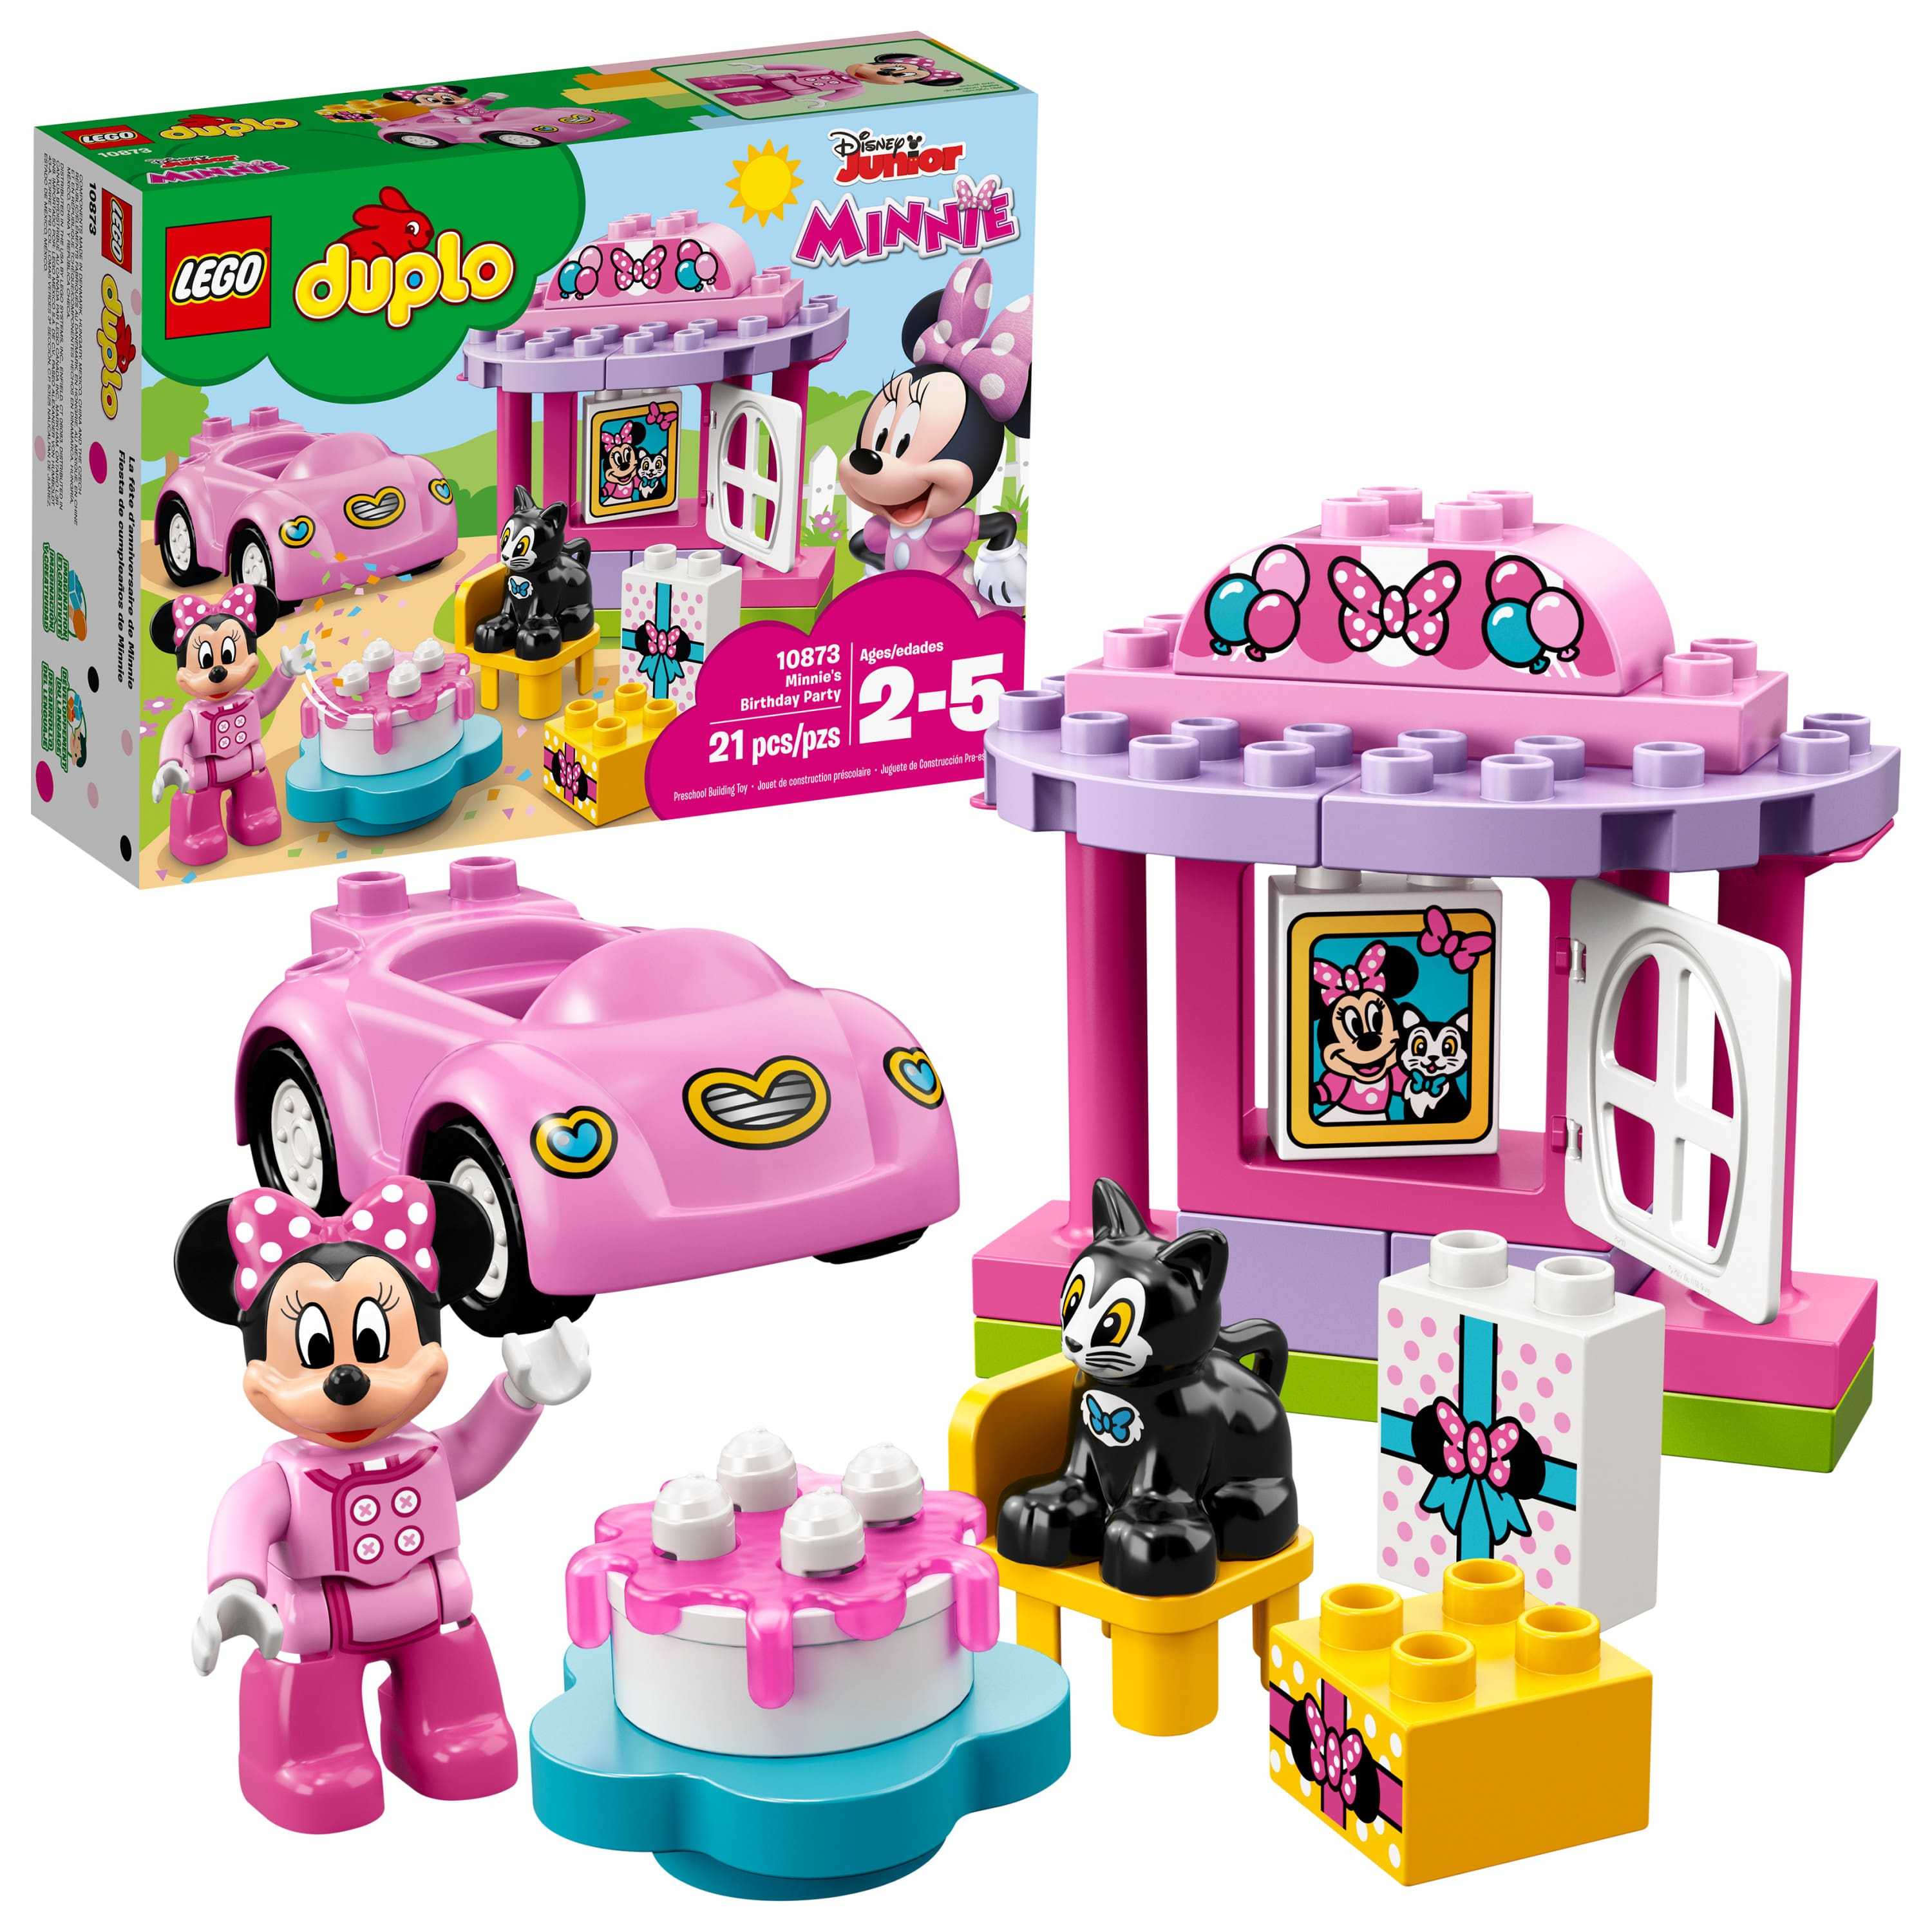 LEGO DUPLO Minnie's Birthday Party 10873 Building Blocks for Toddlers (21 Pieces) only $10